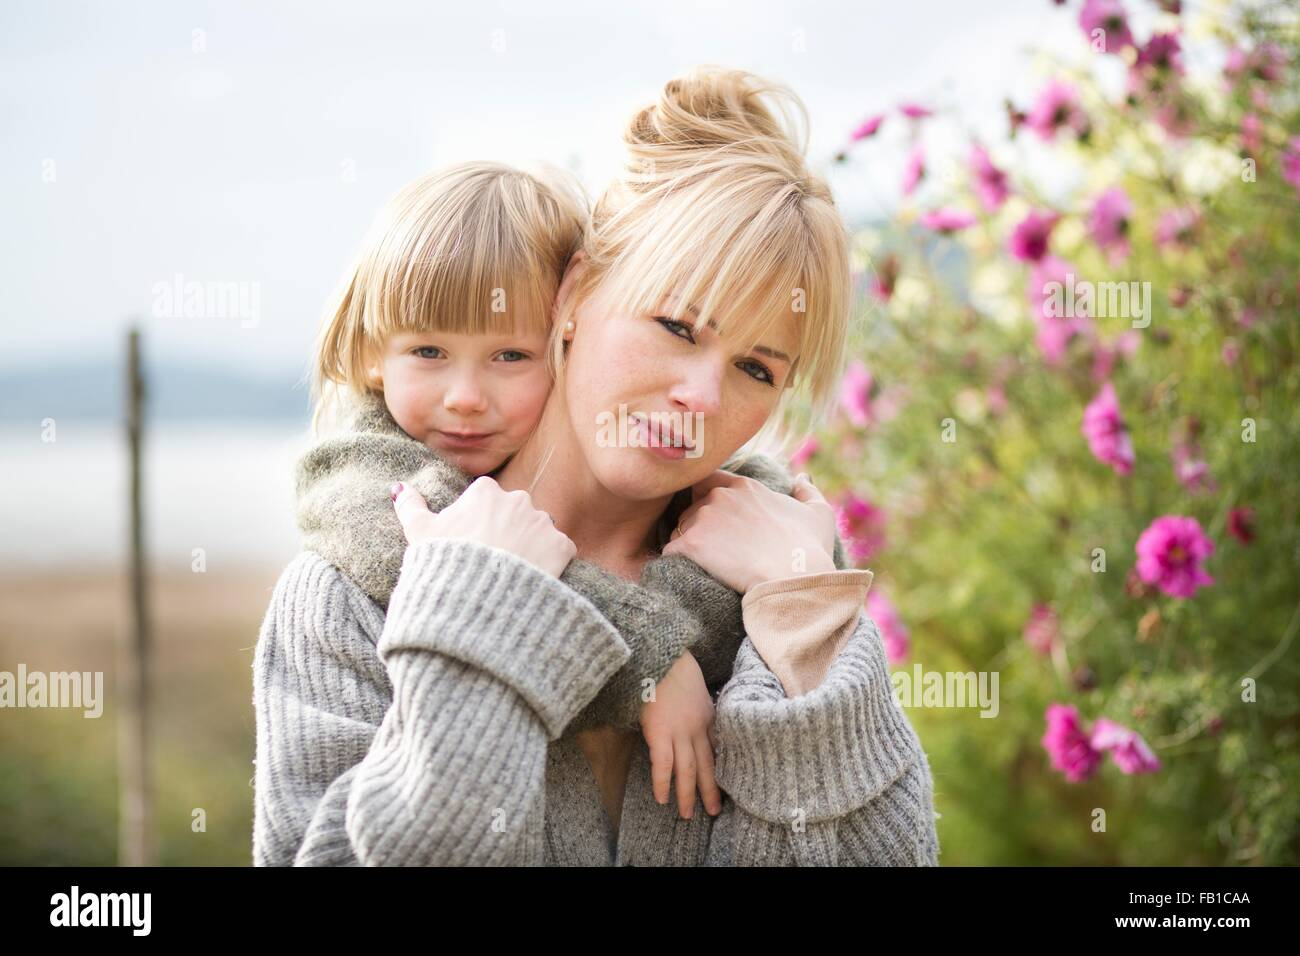 Portrait of boy and mother in organic garden - Stock Image